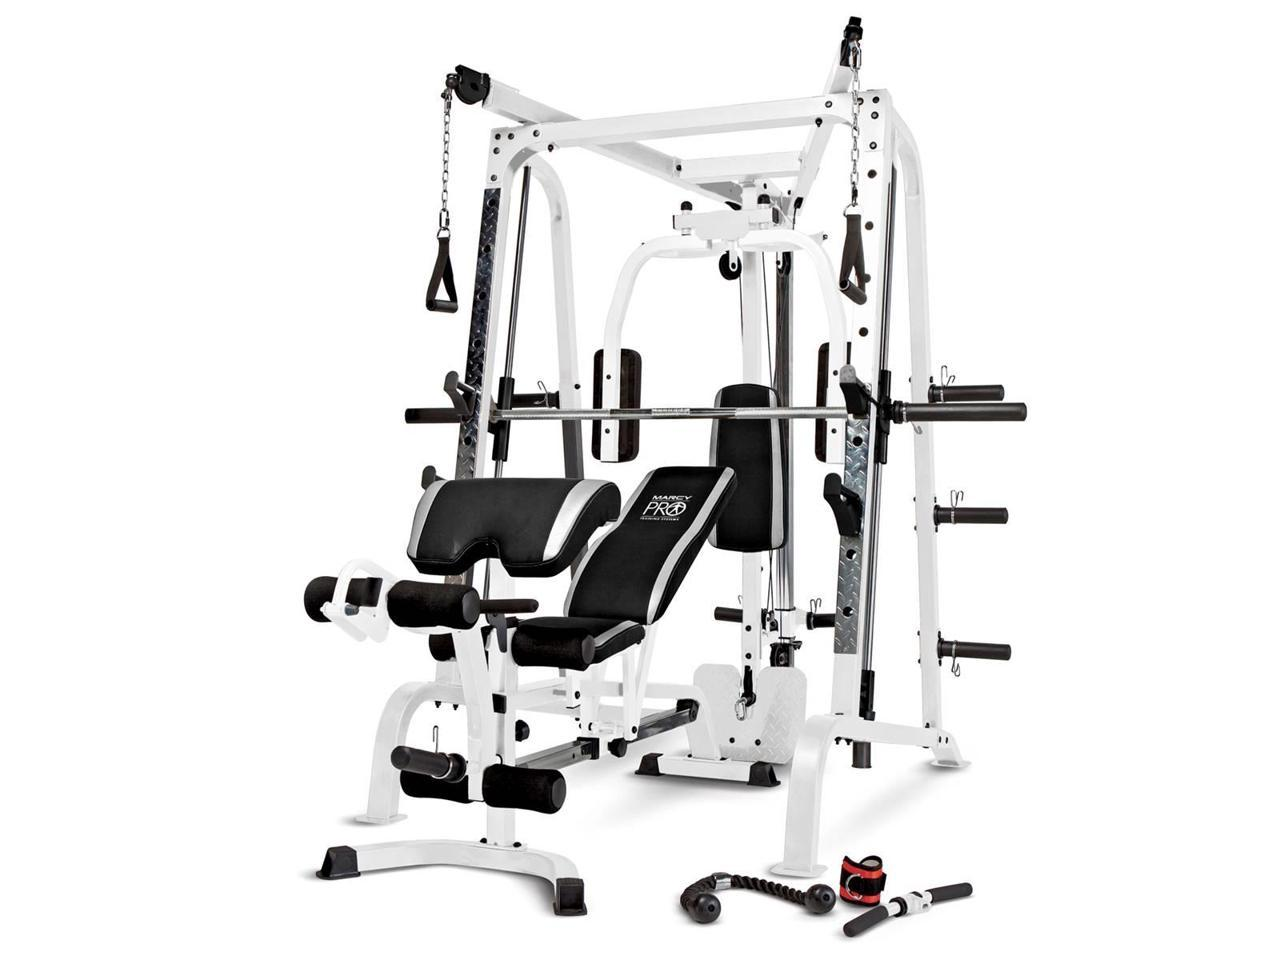 Marcy Diamond Smith Cage Workout Machine Total Body Training Home Gym System